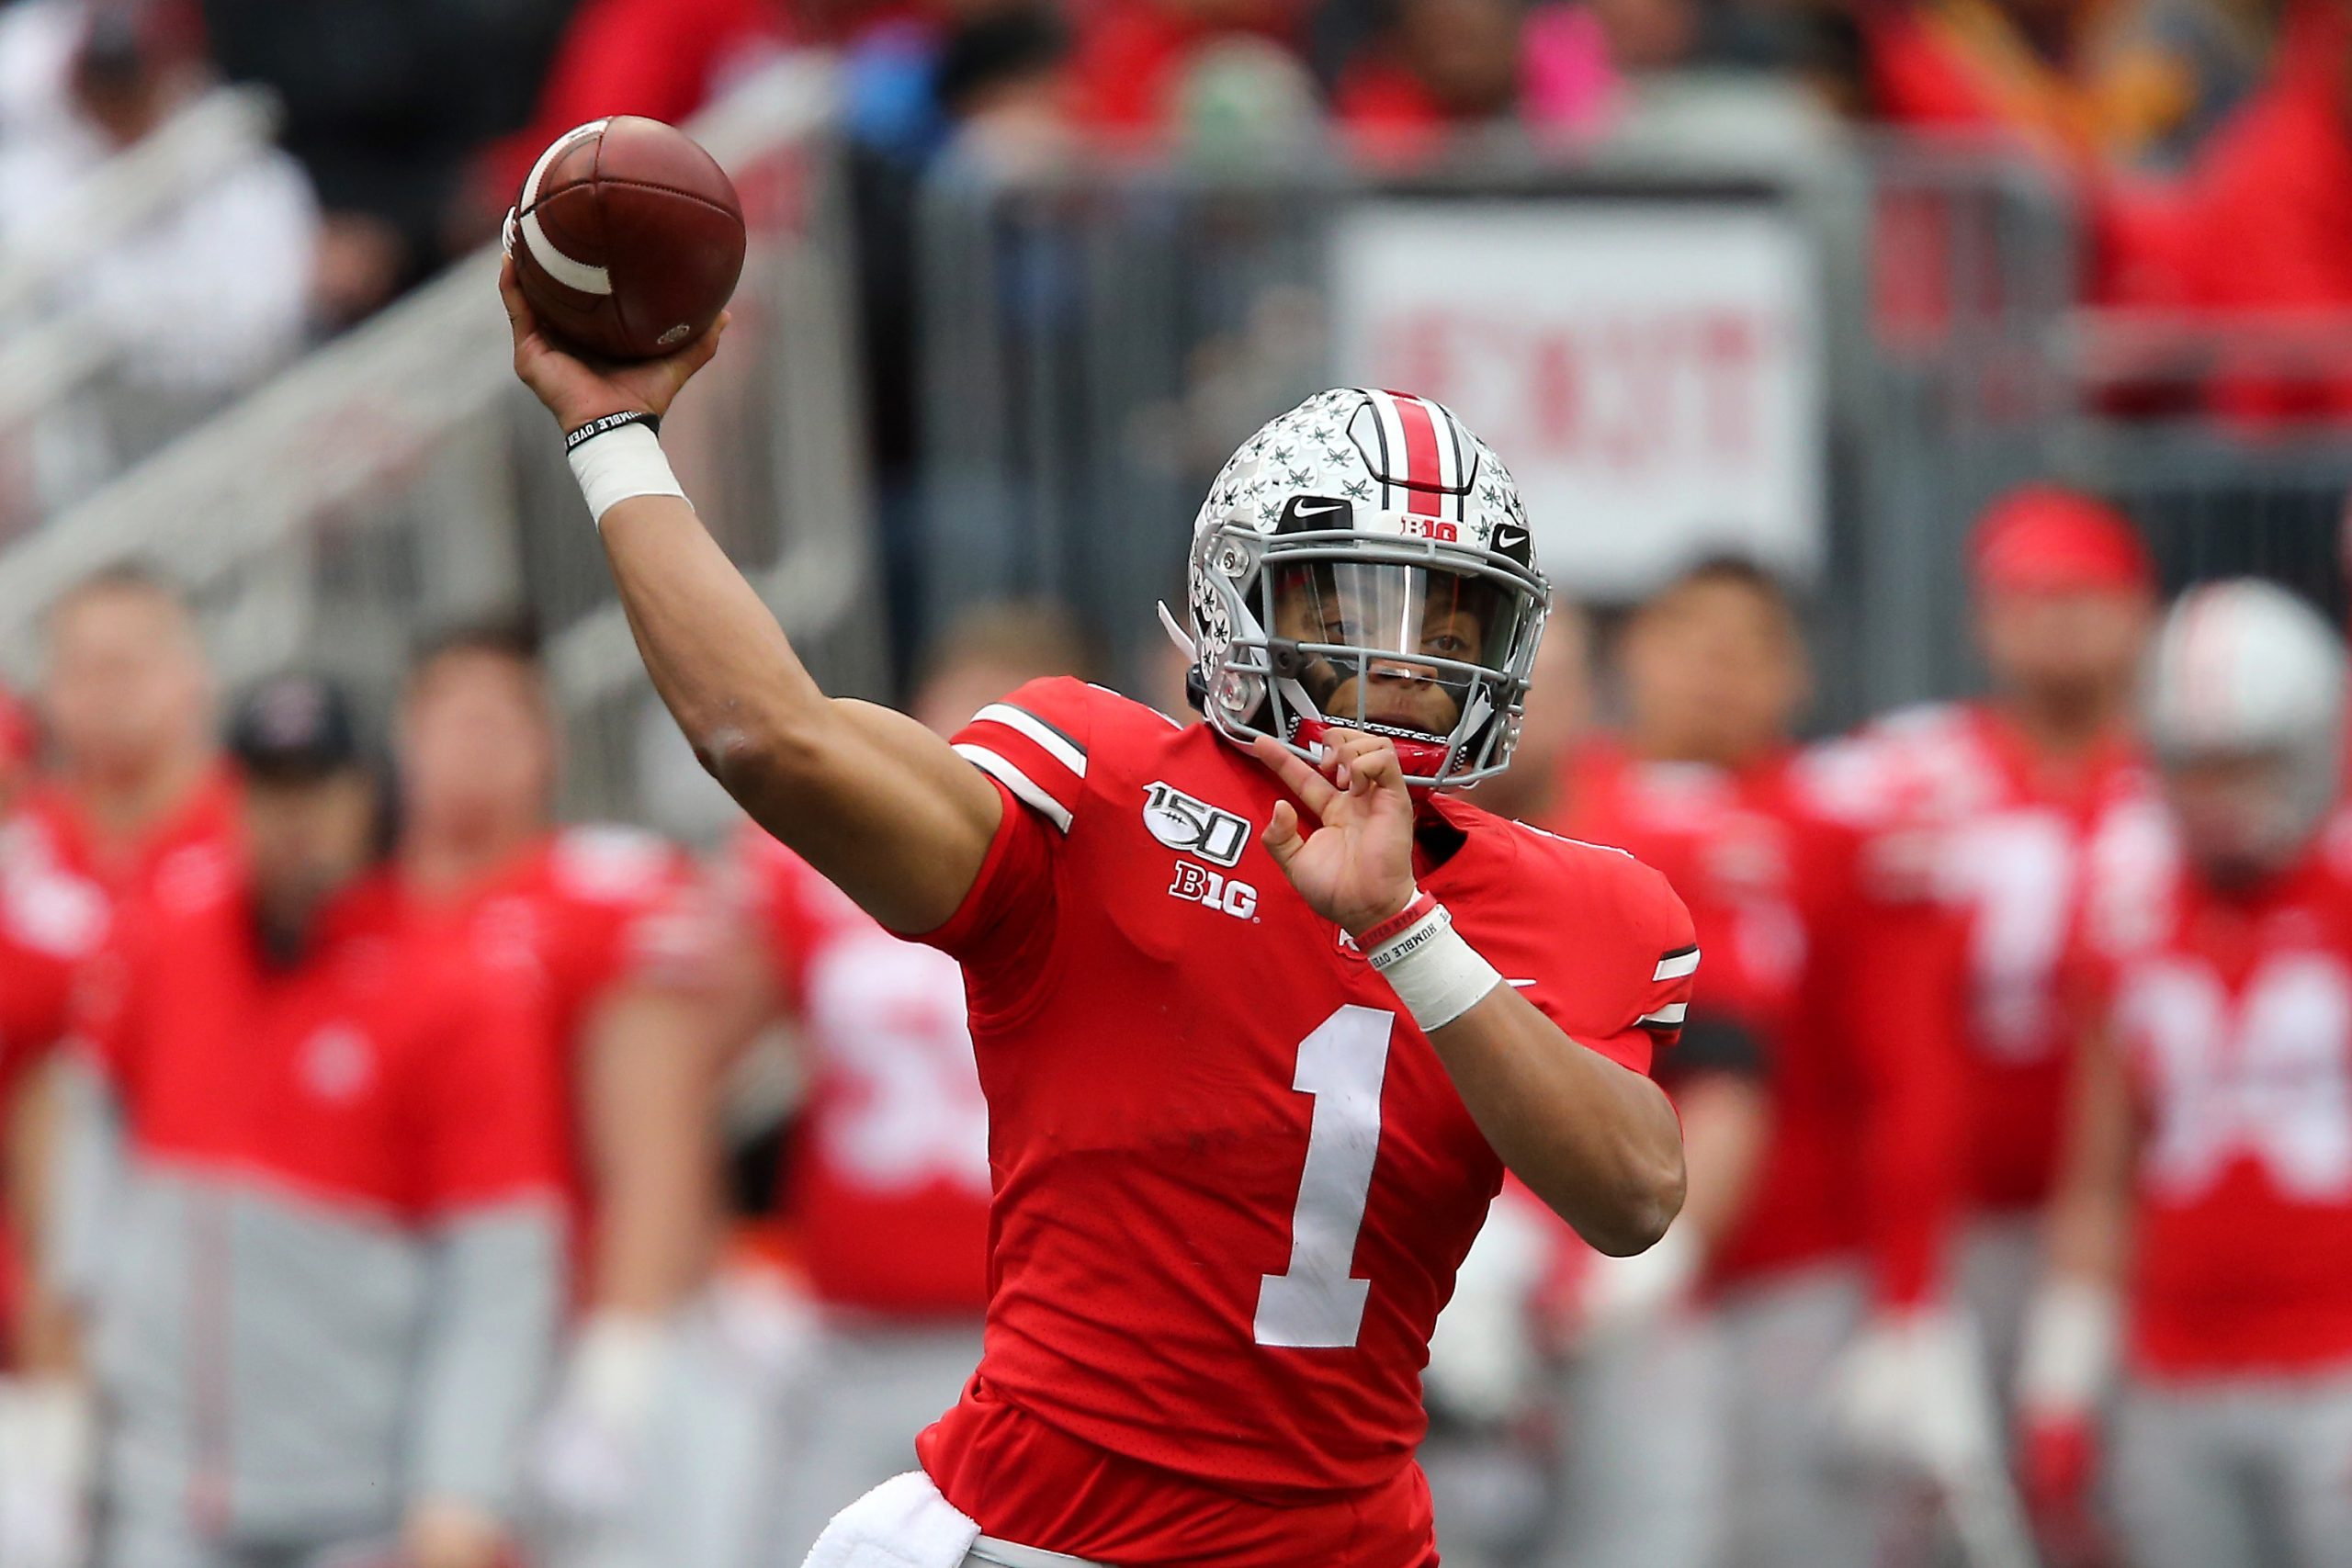 Top 5 2020 College Football Games